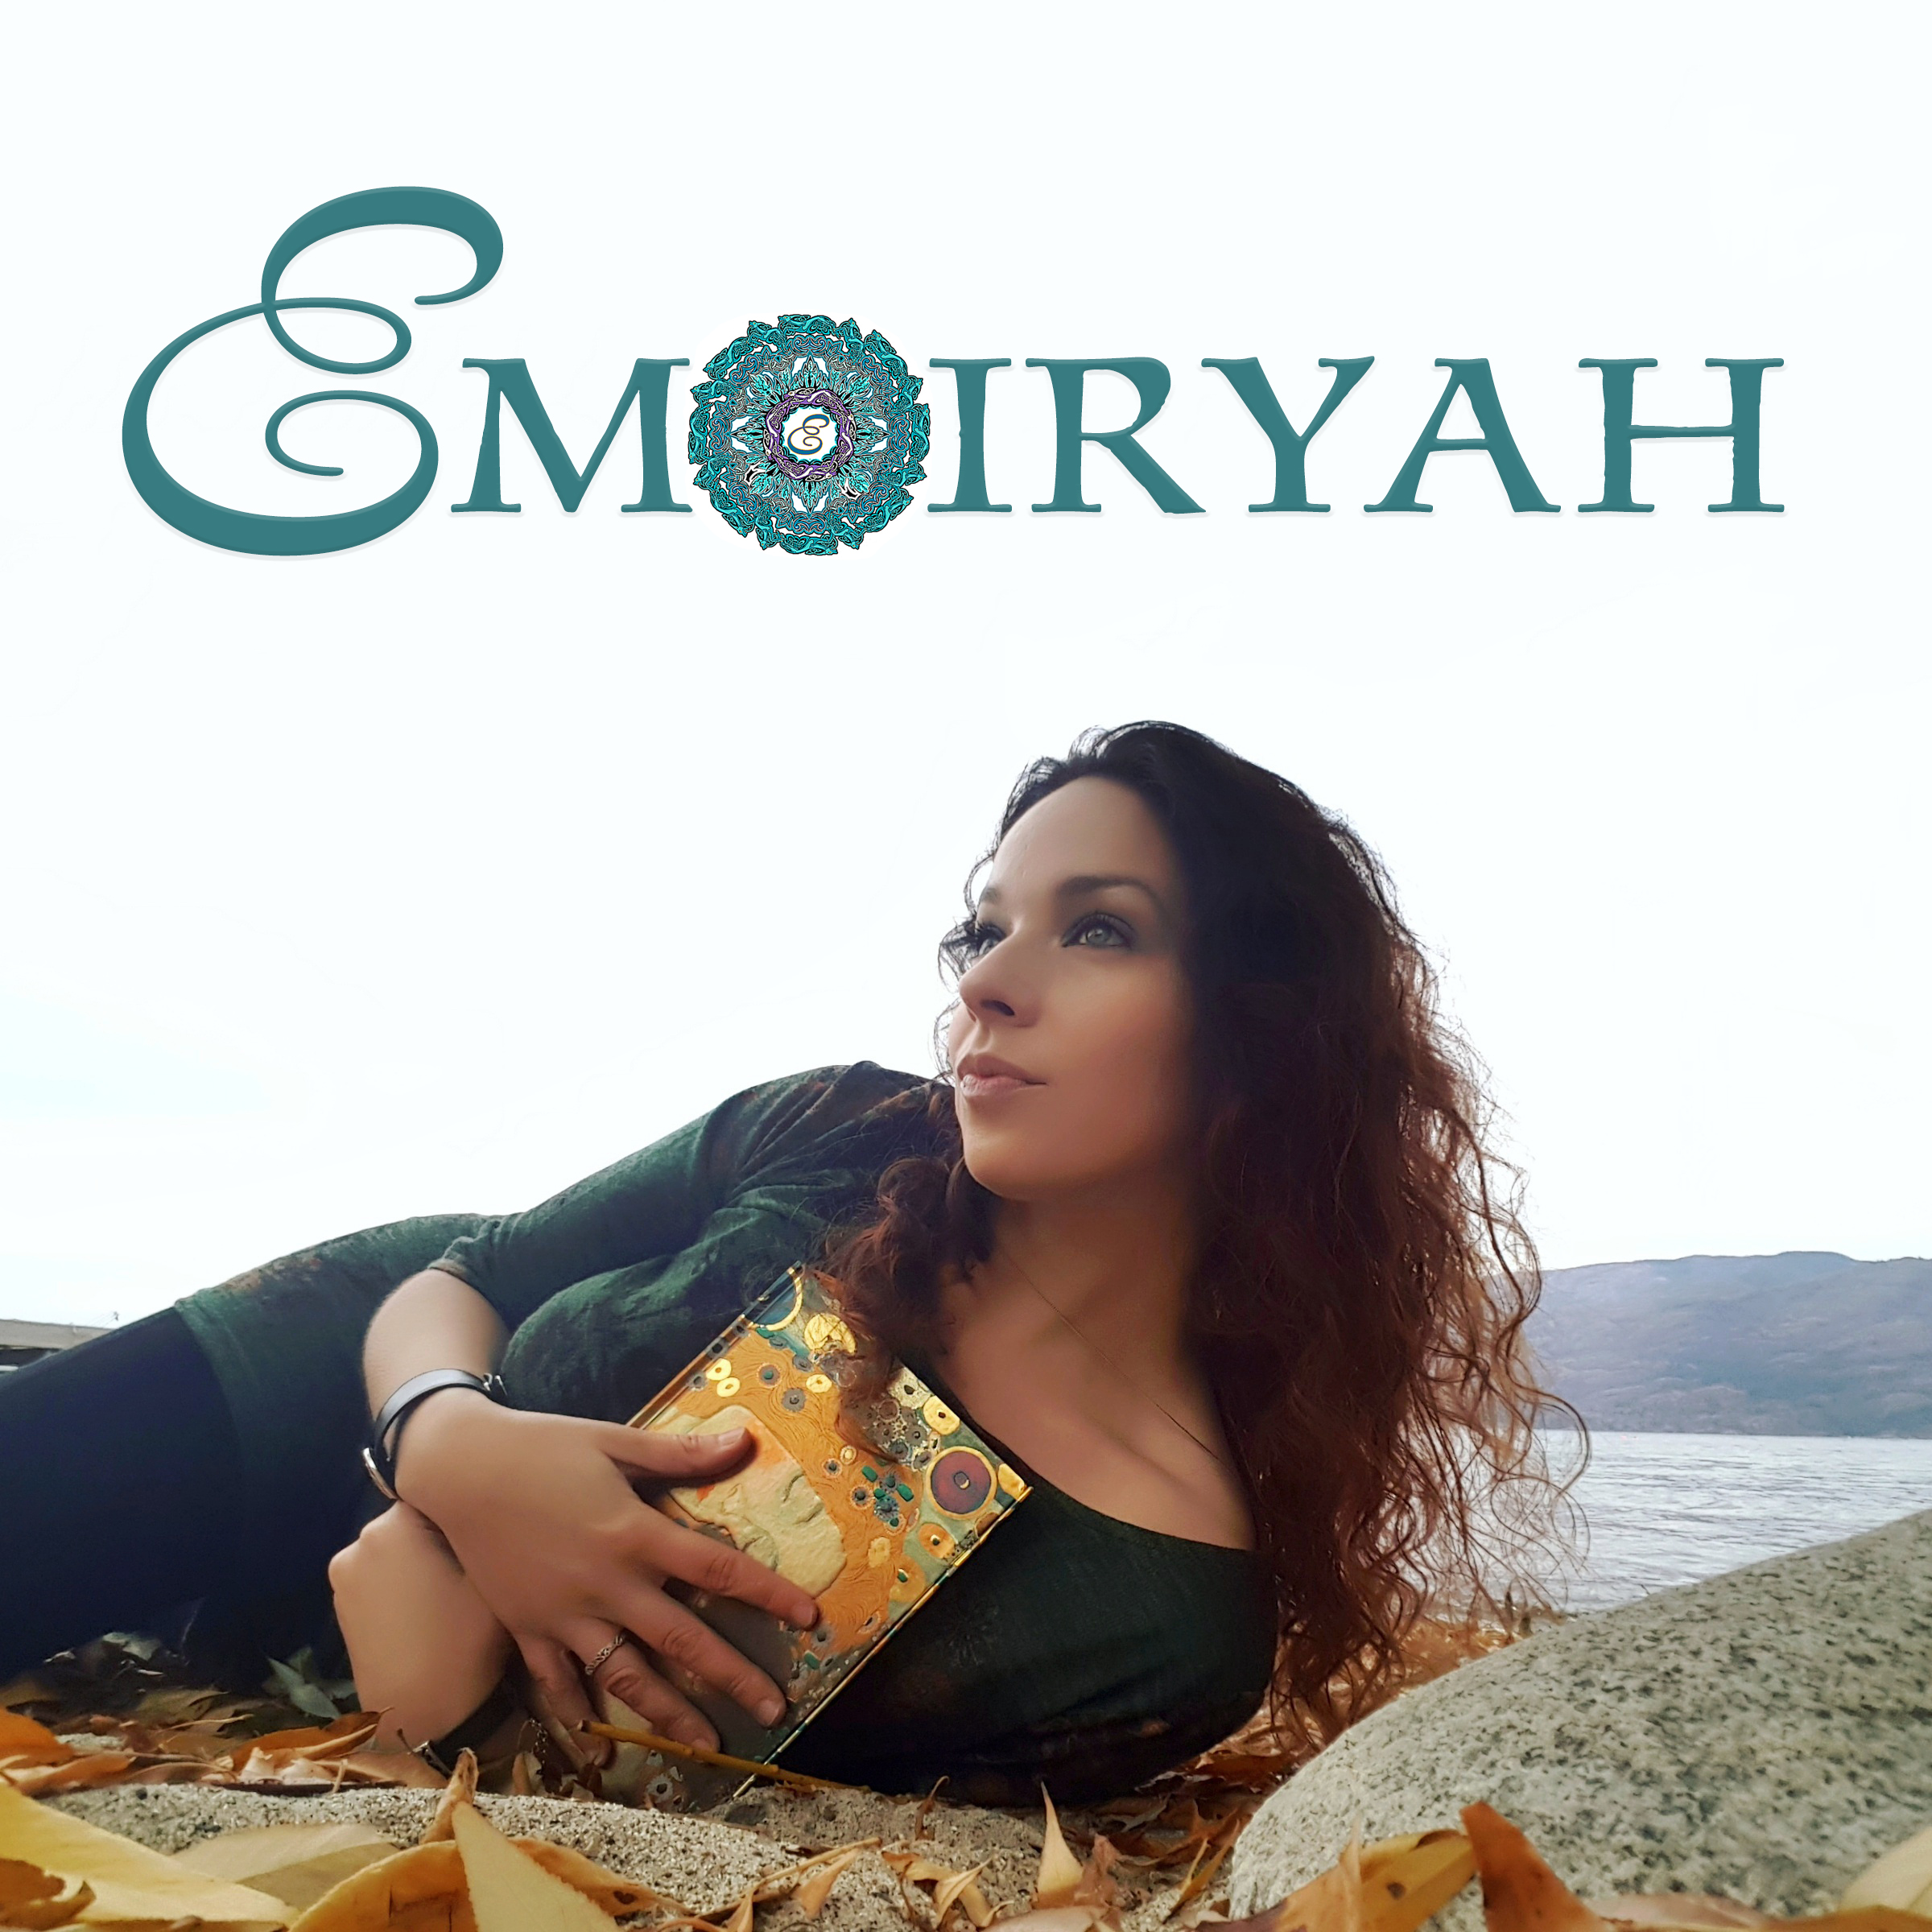 Emoiryah Singer-Songwriter